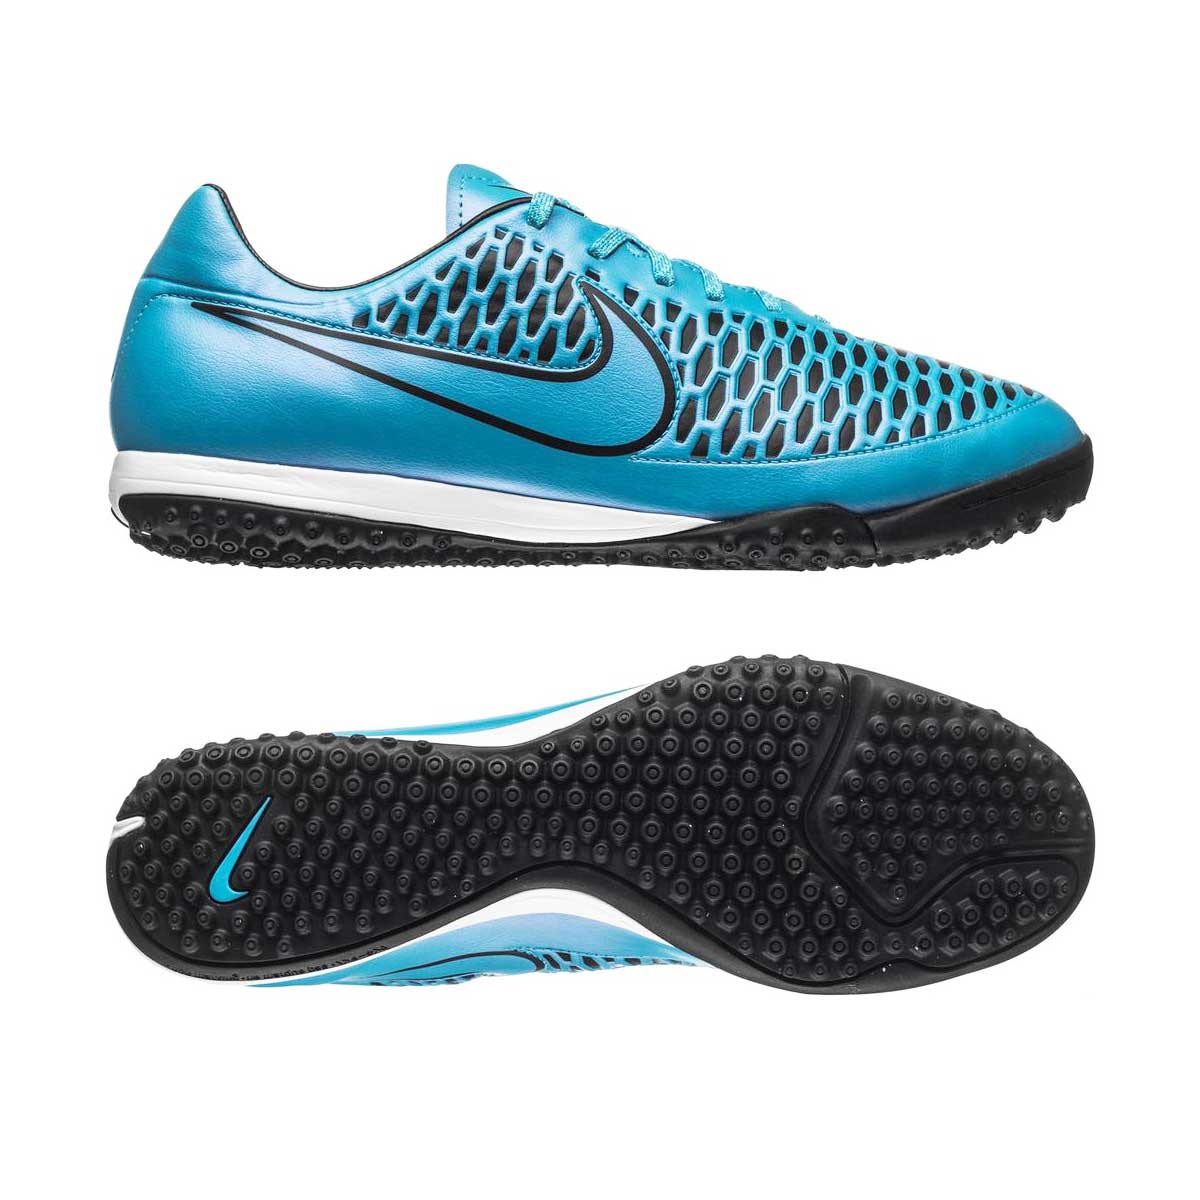 Buy Nike Magista Onda TF Football Shoes Online in India 9ef5c269fdc2